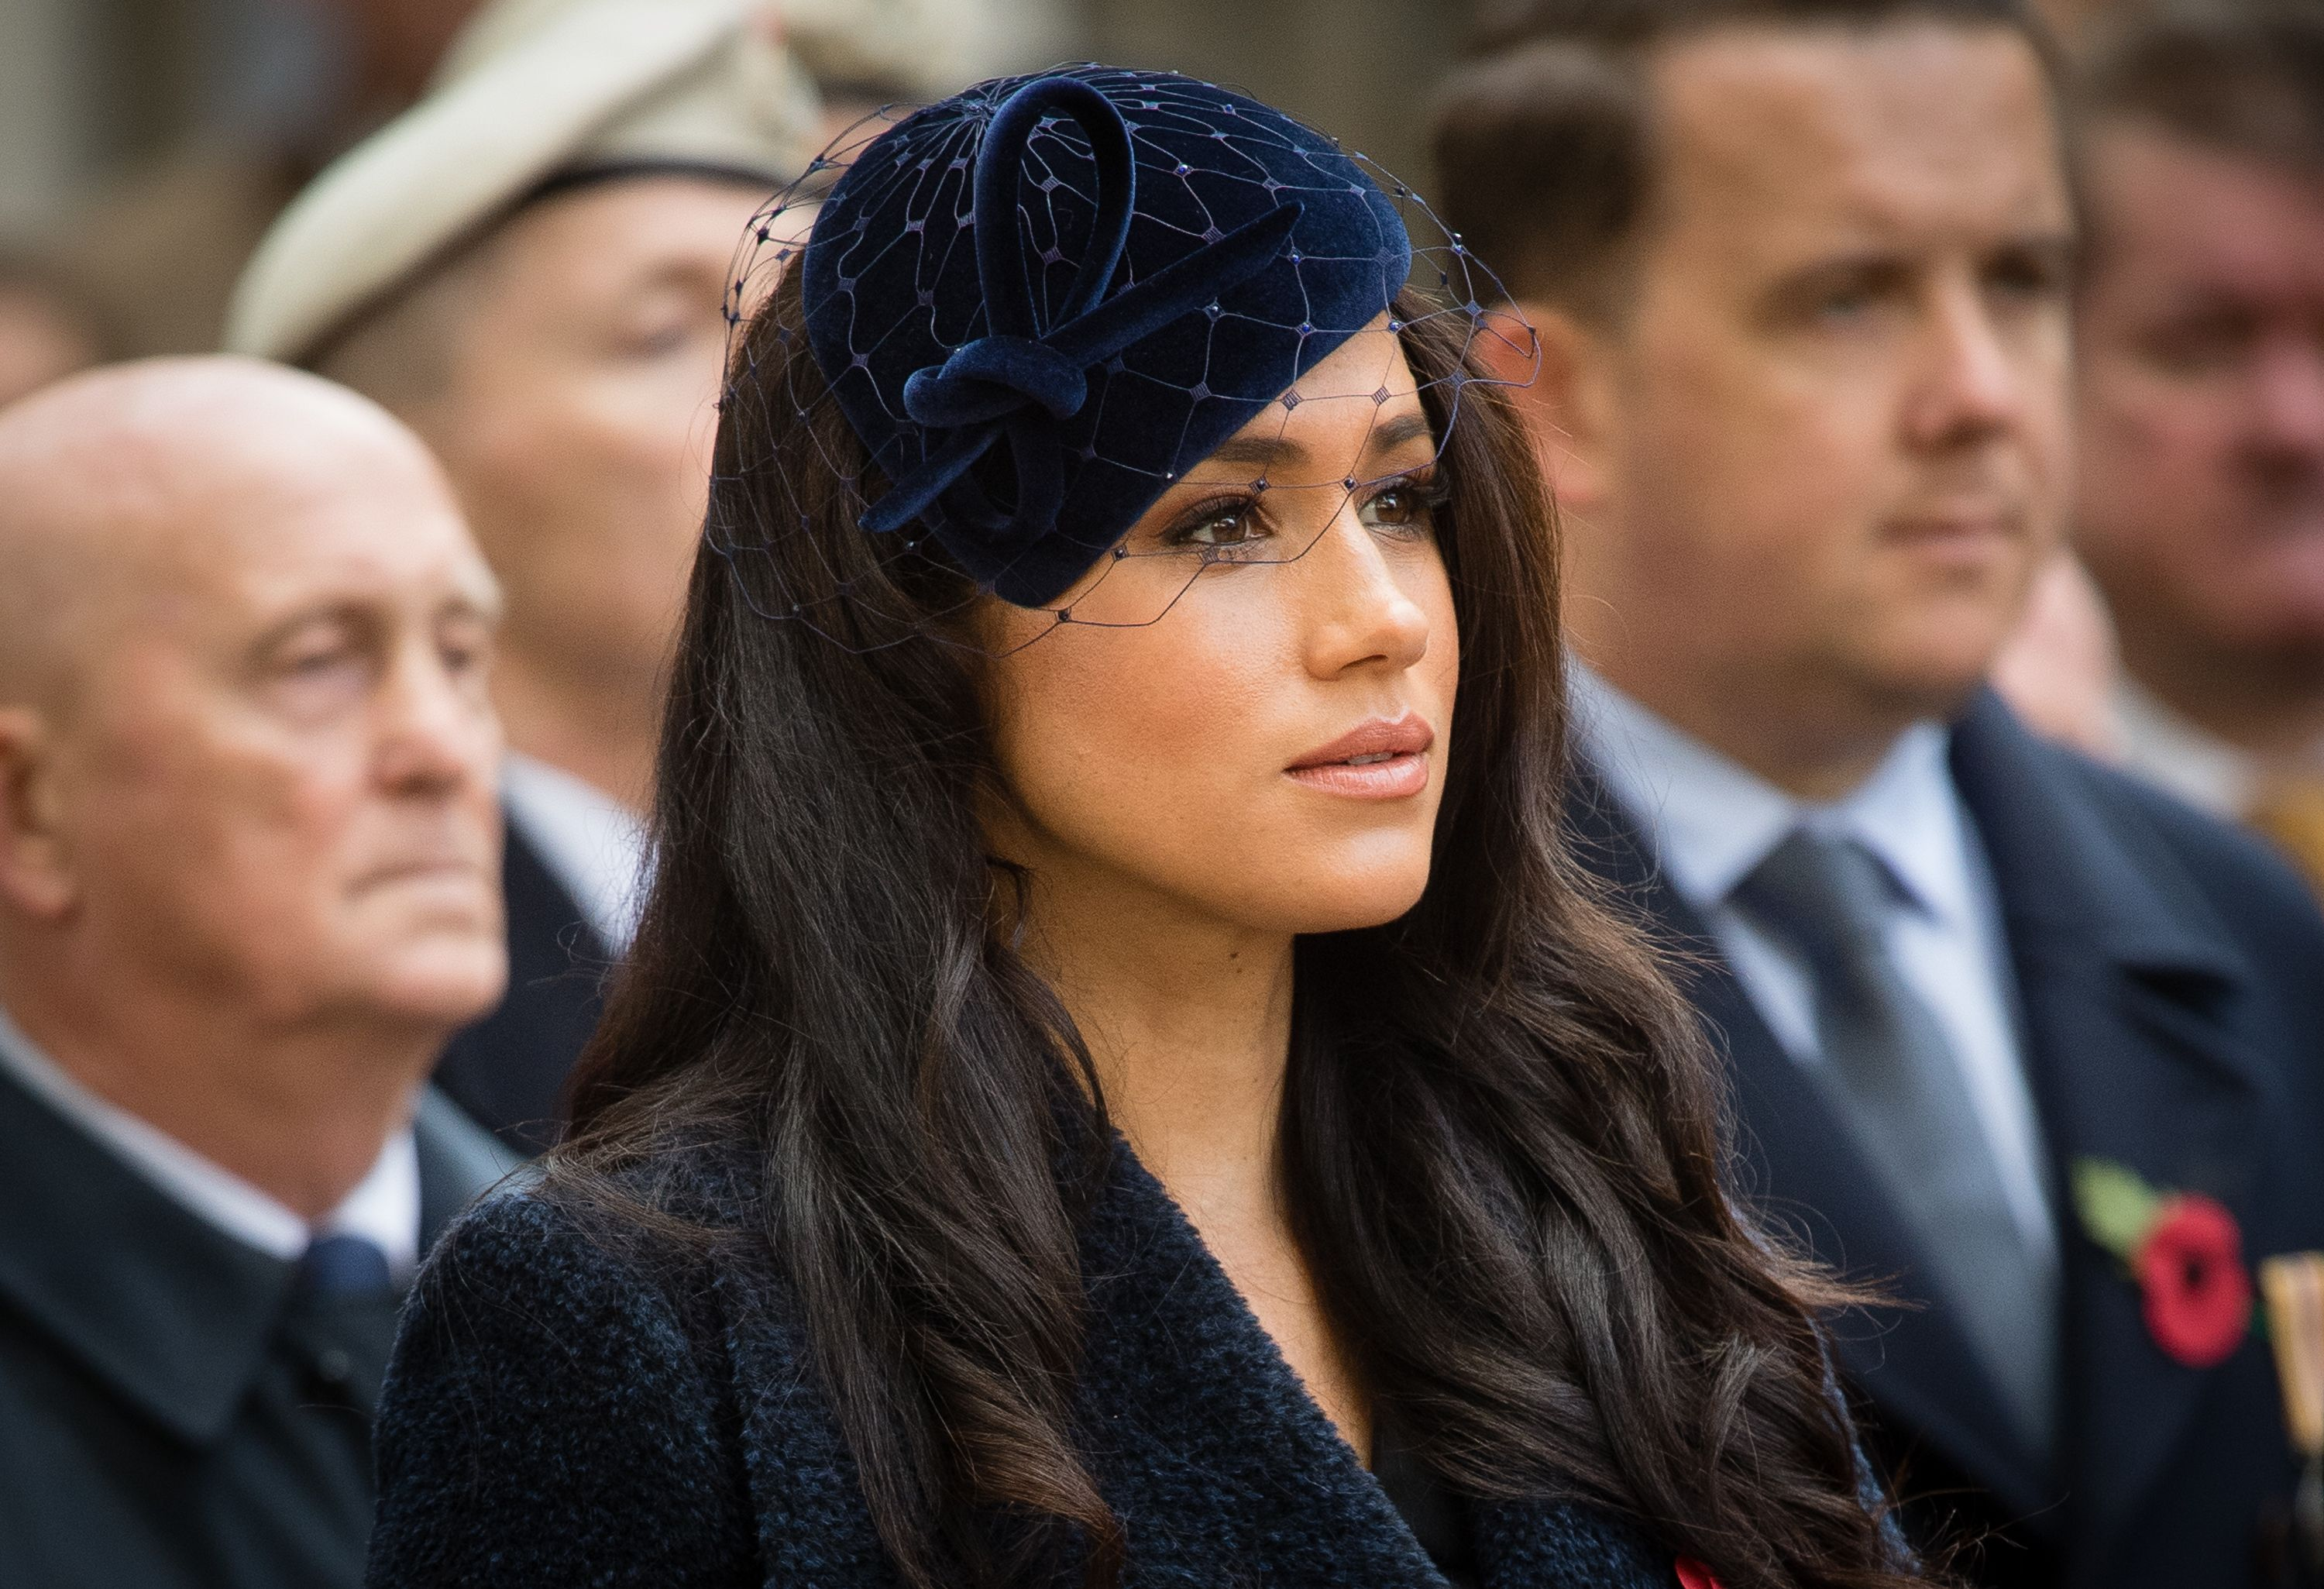 Meghan Markle Took the Time to Sweetly Respond to a Fan Letter